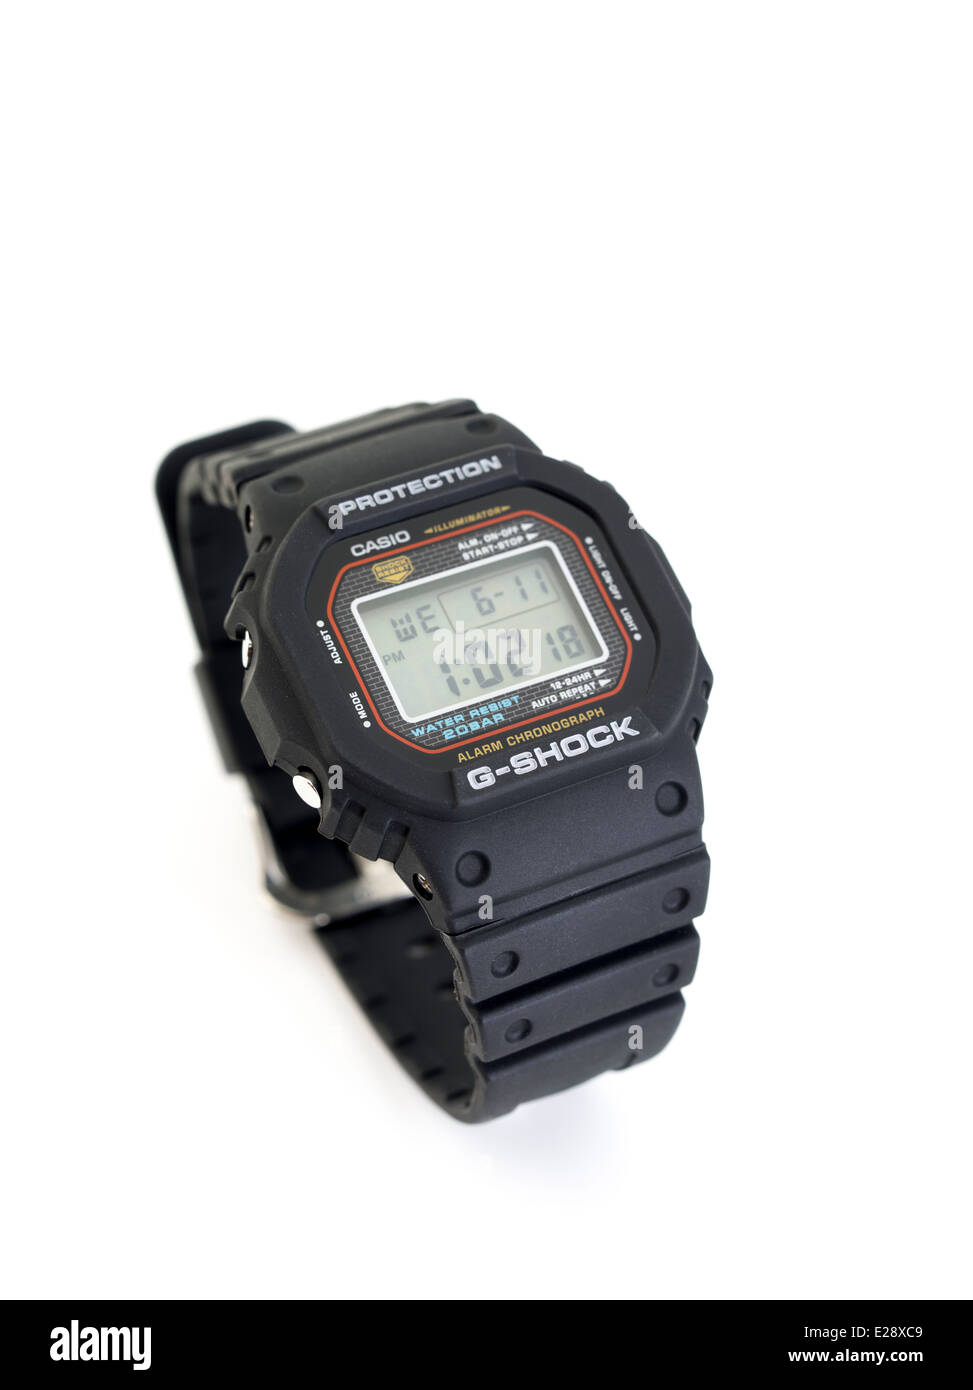 CASIO G-SHOCK DW-5000C digital watch first released in 1983 - Stock Image